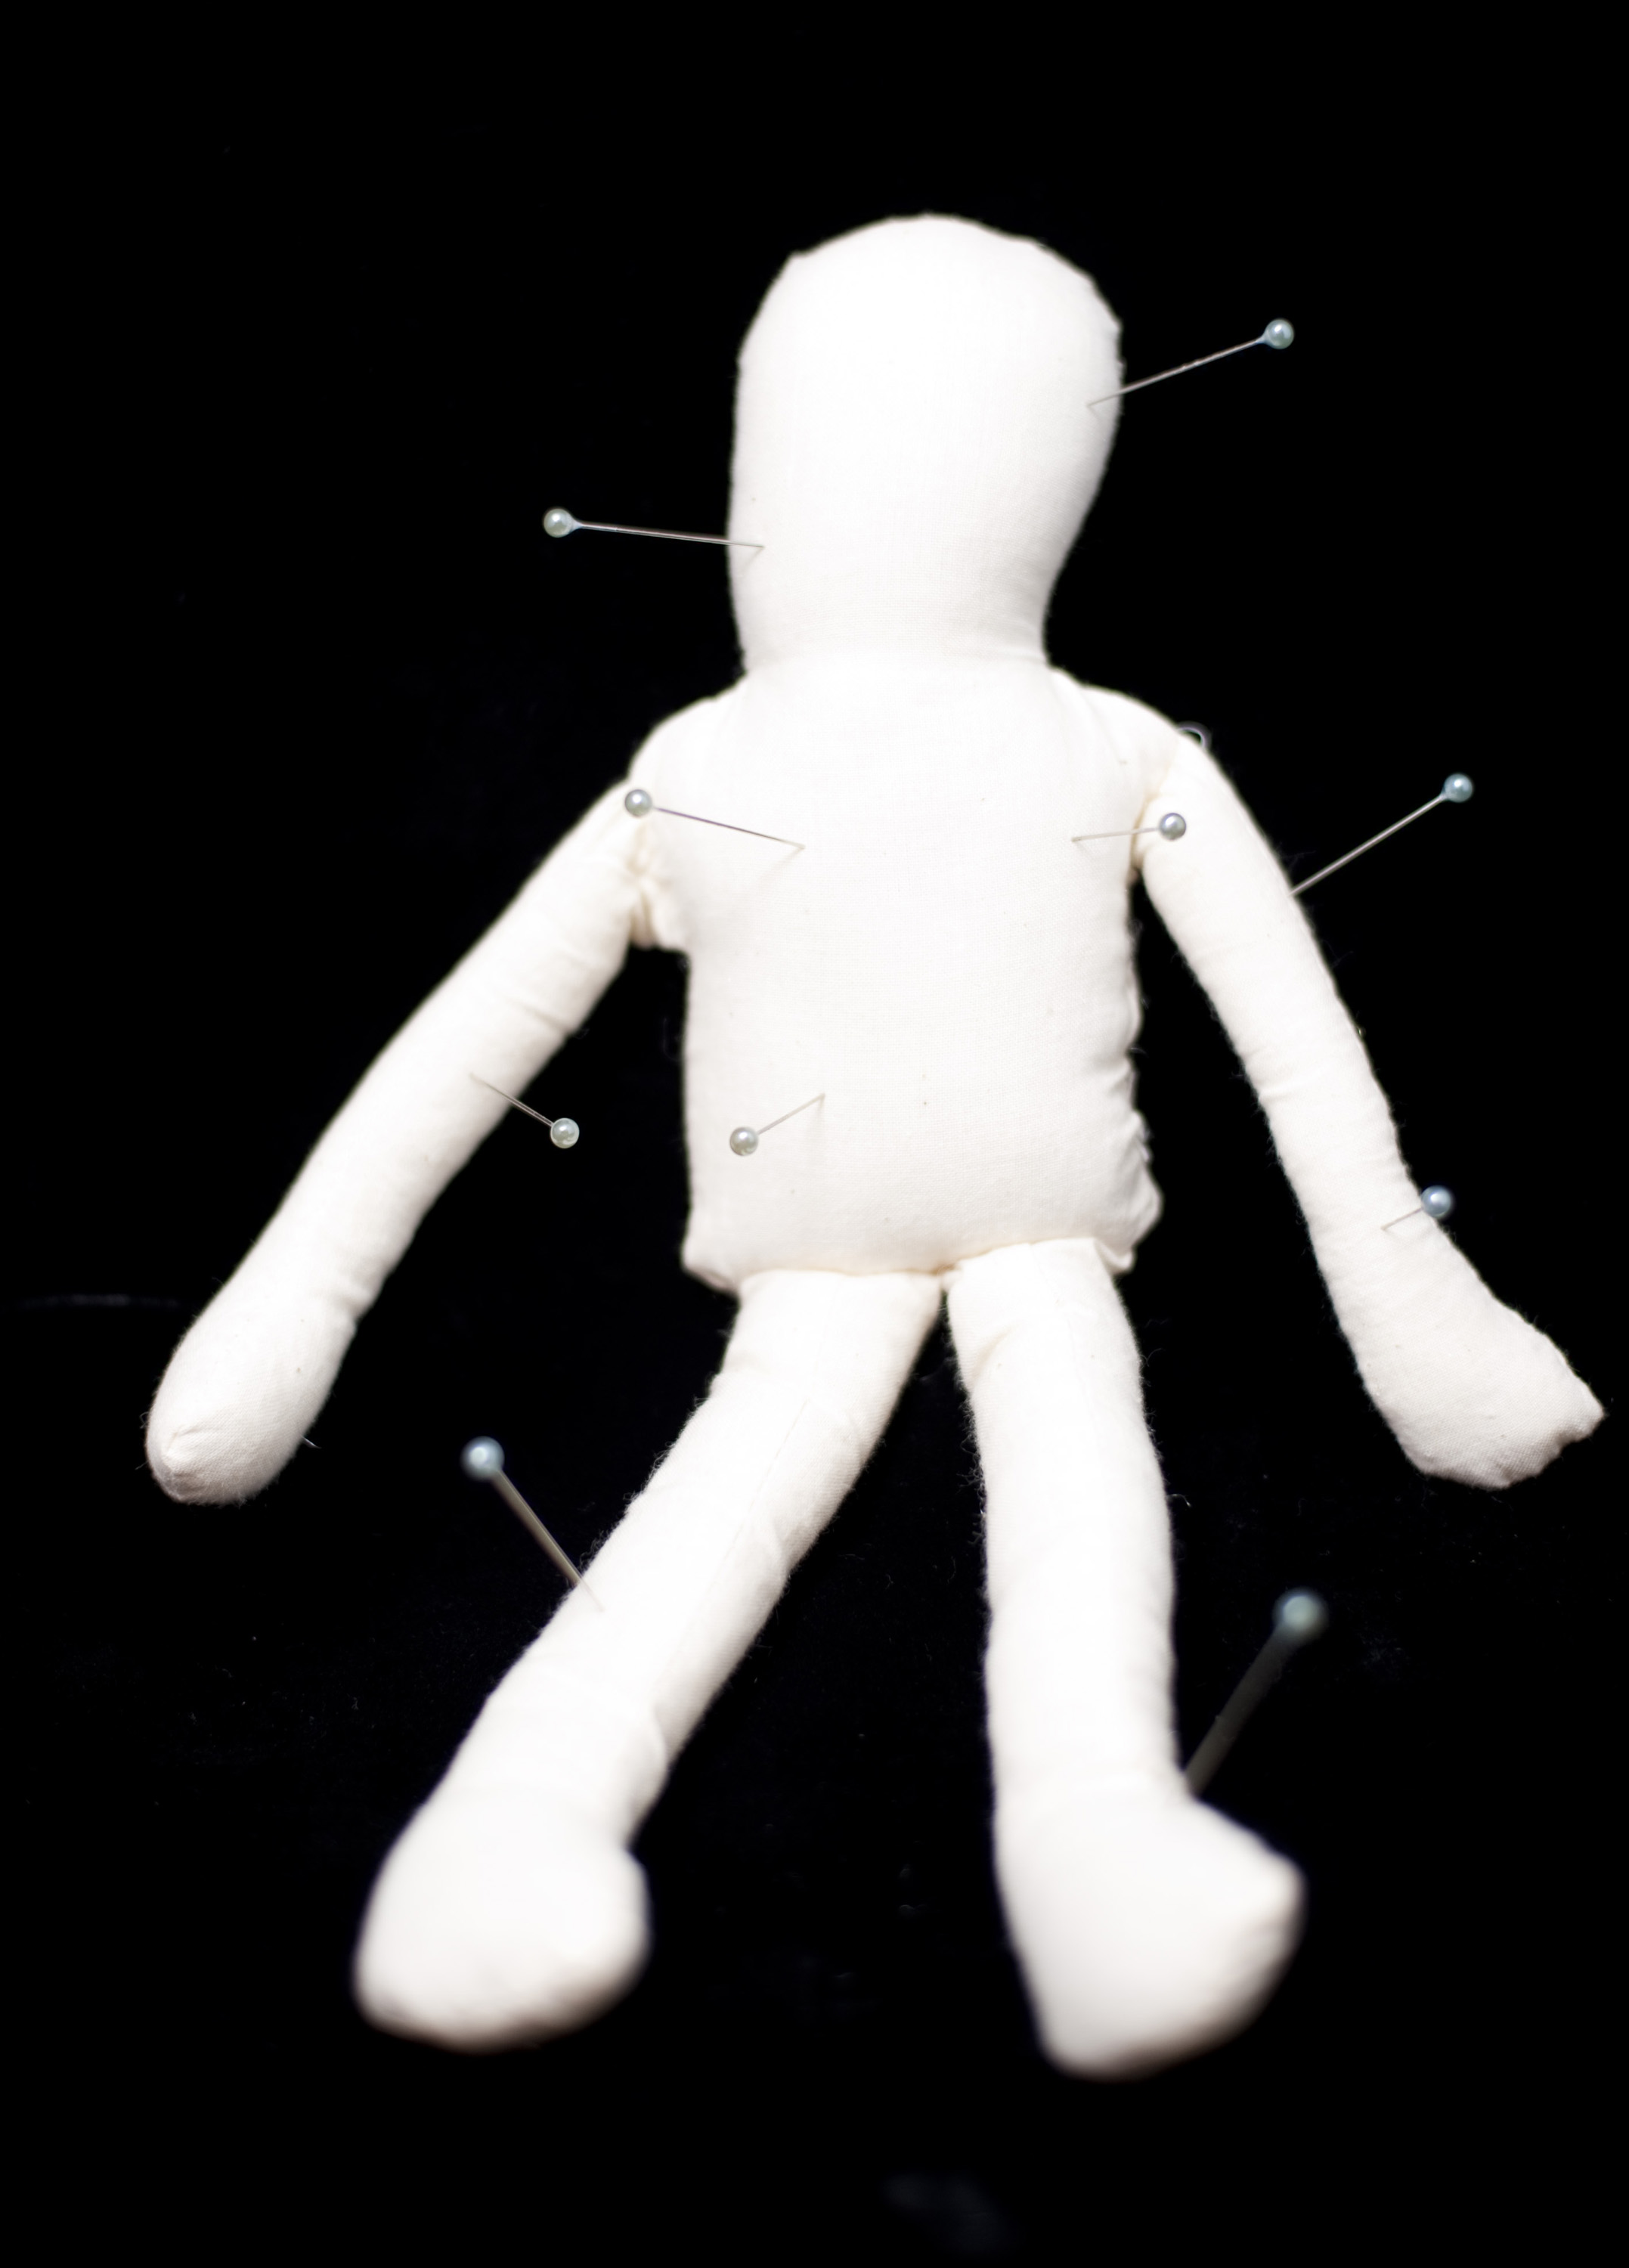 bad magic - a white voodoo doll with pins